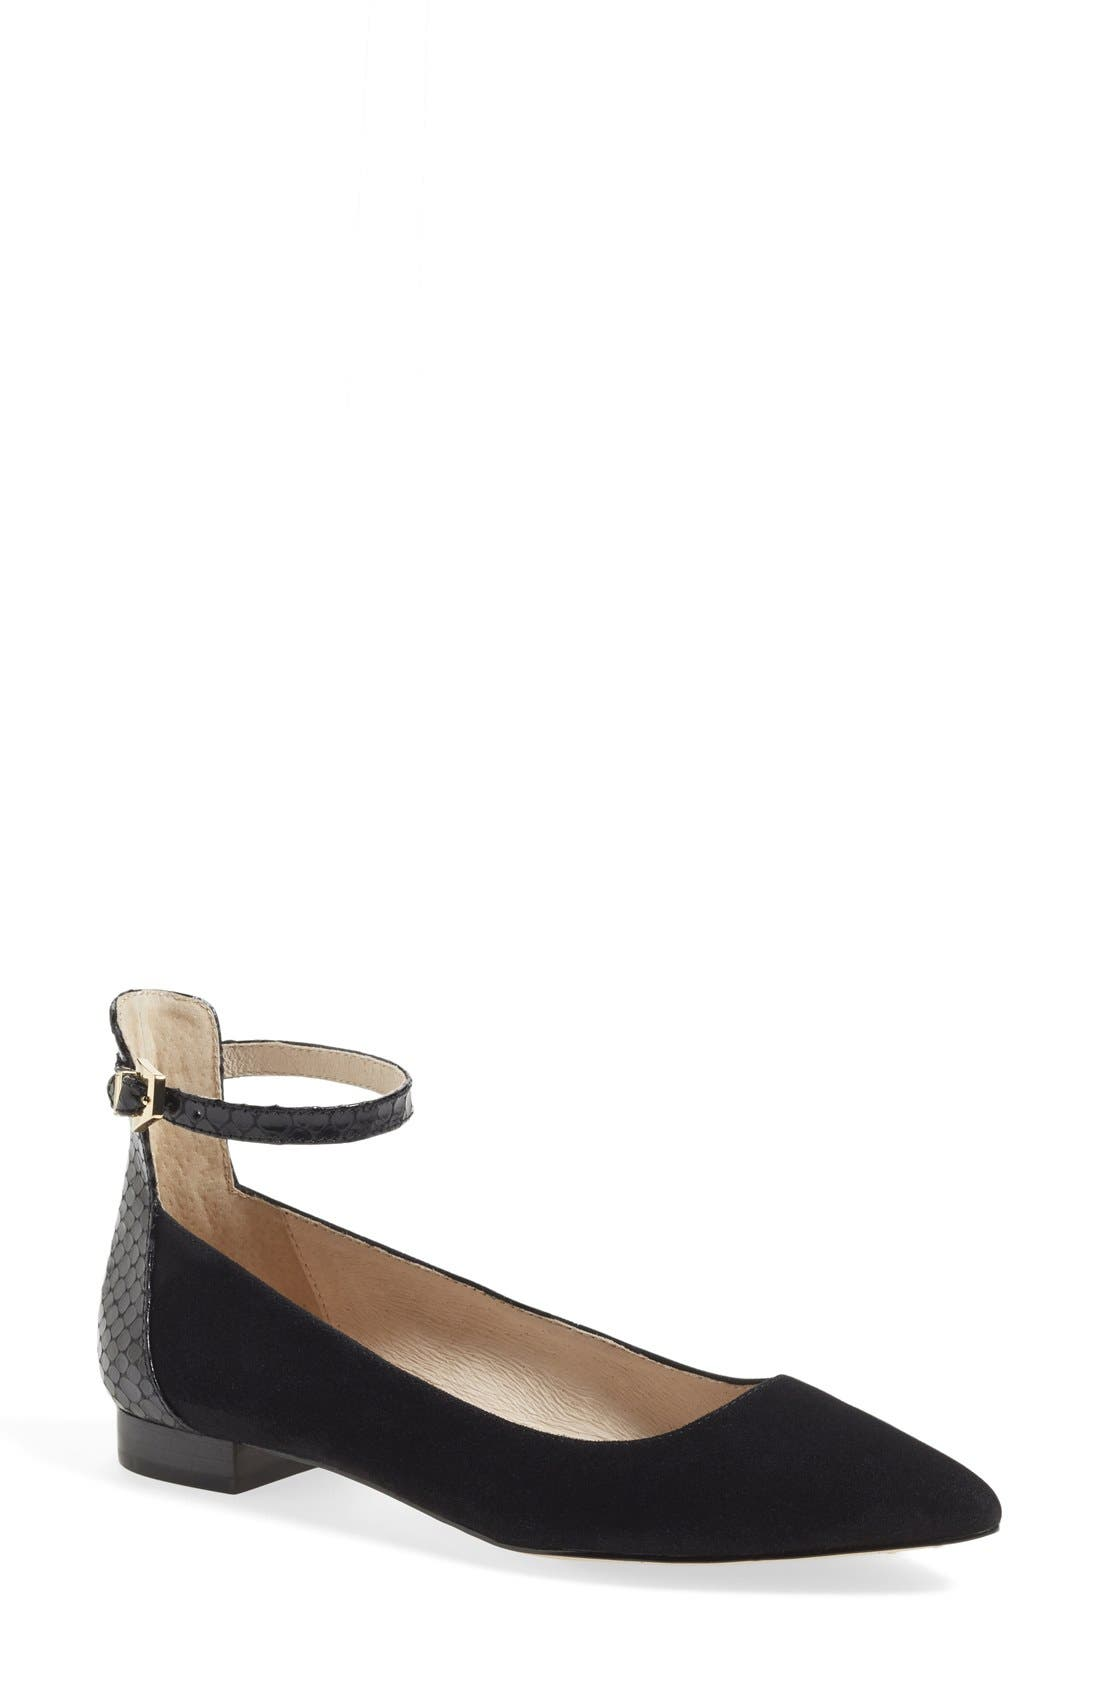 LOUISE ET CIE 'Barry' Ankle Strap Flat, Main, color, 001